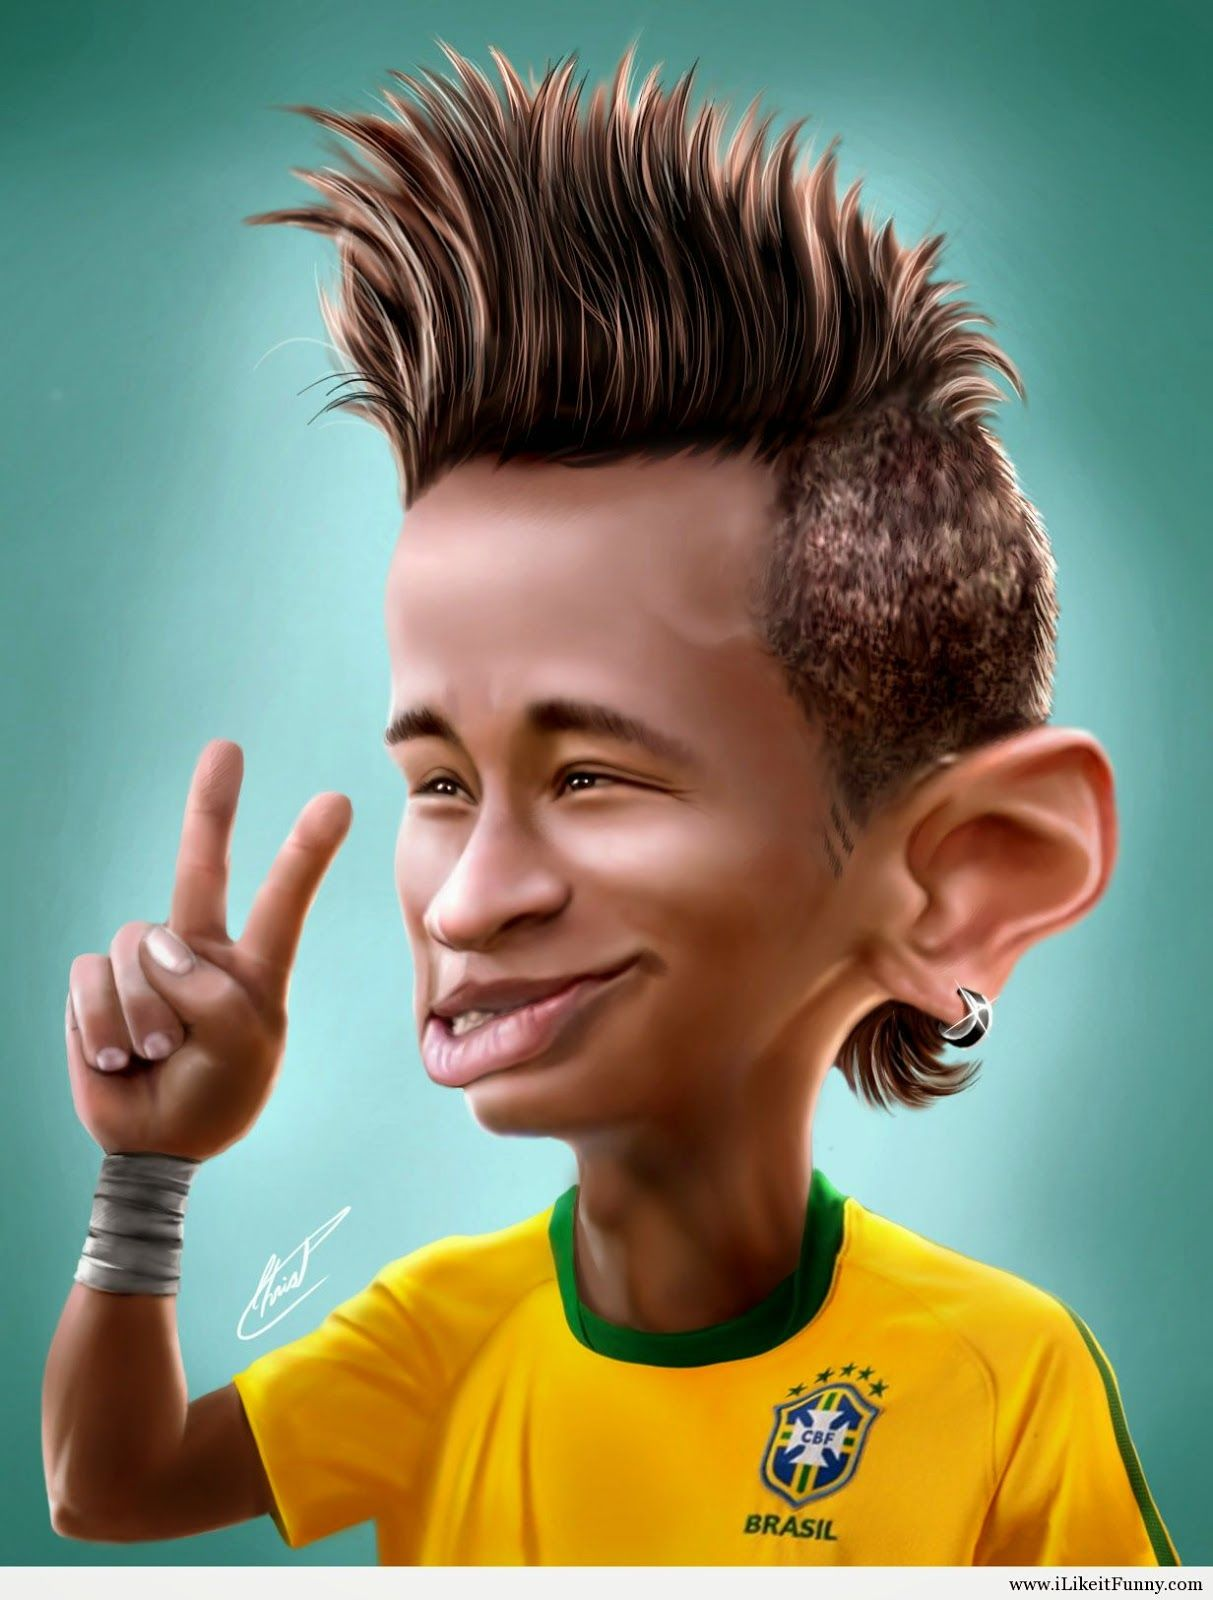 10 Gambar Wallpaper Cool Neymar Gambar Kartun Lucu Dan Wallpaper Goofy Face Funny Caricatures Celebrity Caricatures